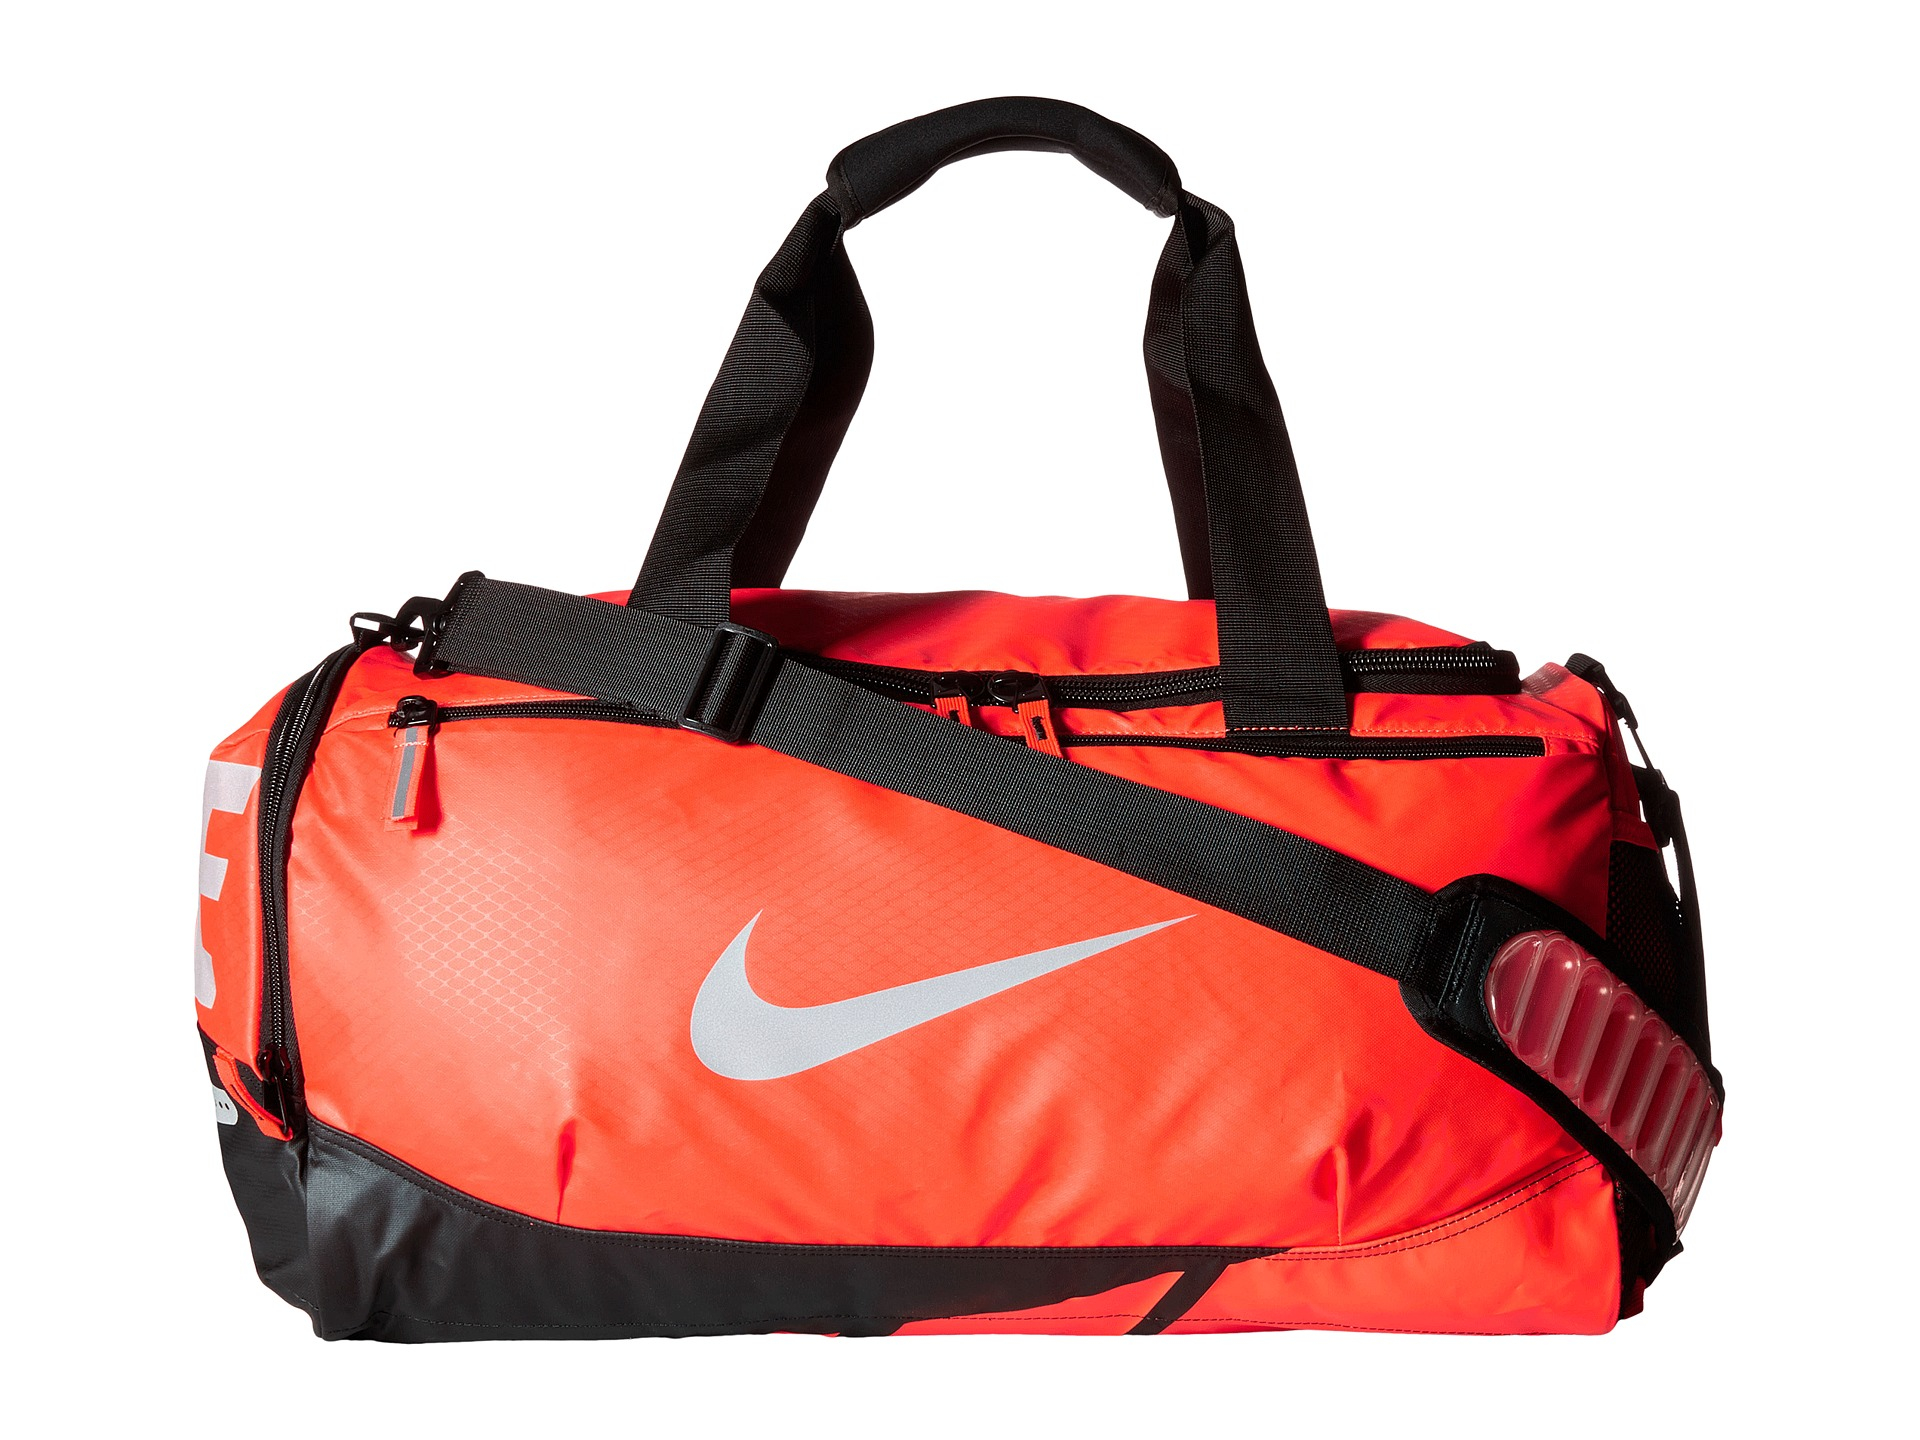 Lyst - Nike Vapor Max Air Small Duffel in Orange 6434b3a7e5137